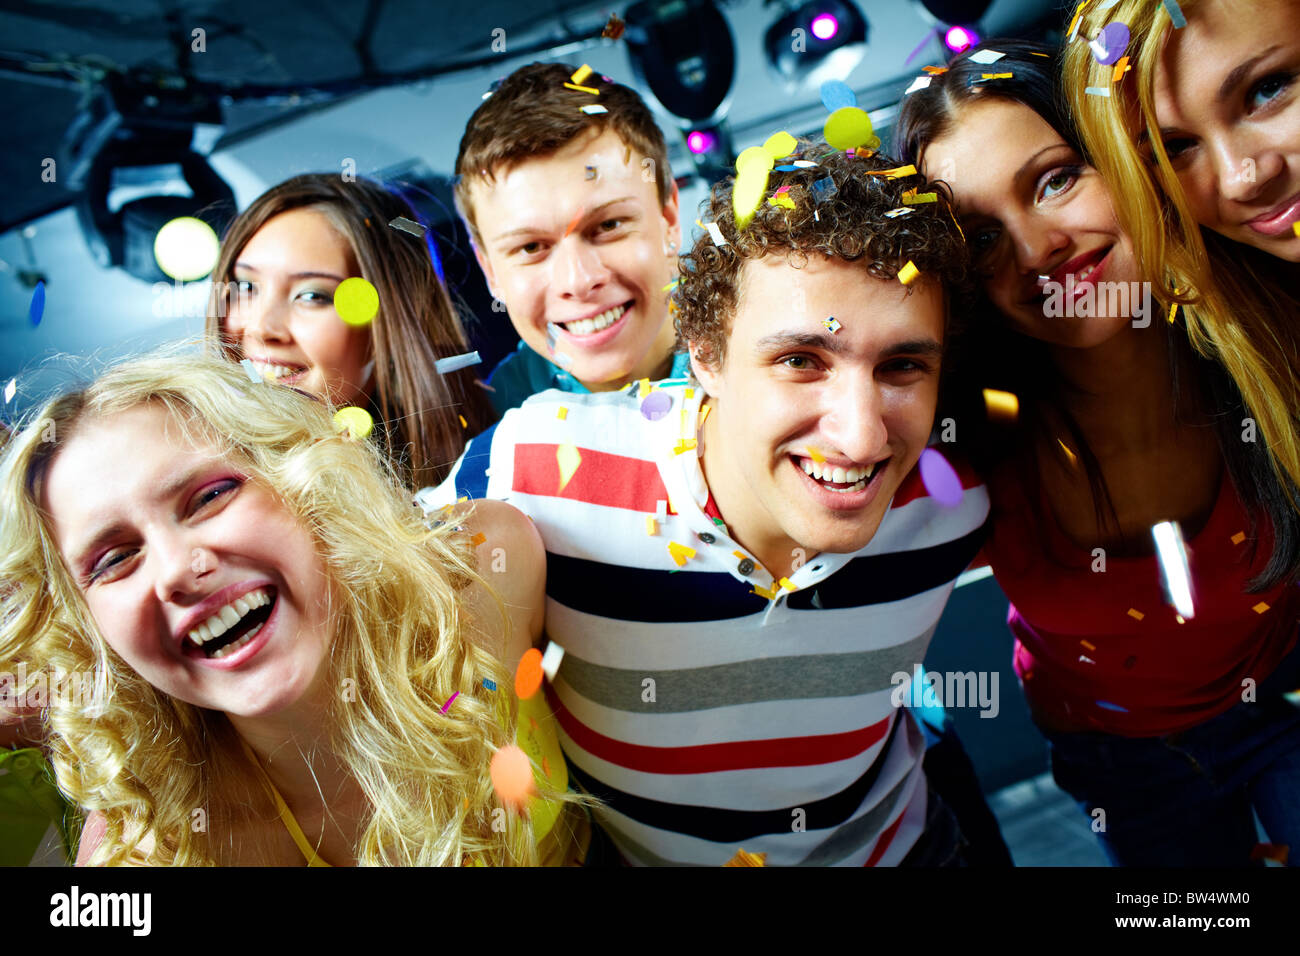 Portrait of happy glamorous friends in a night club - Stock Image